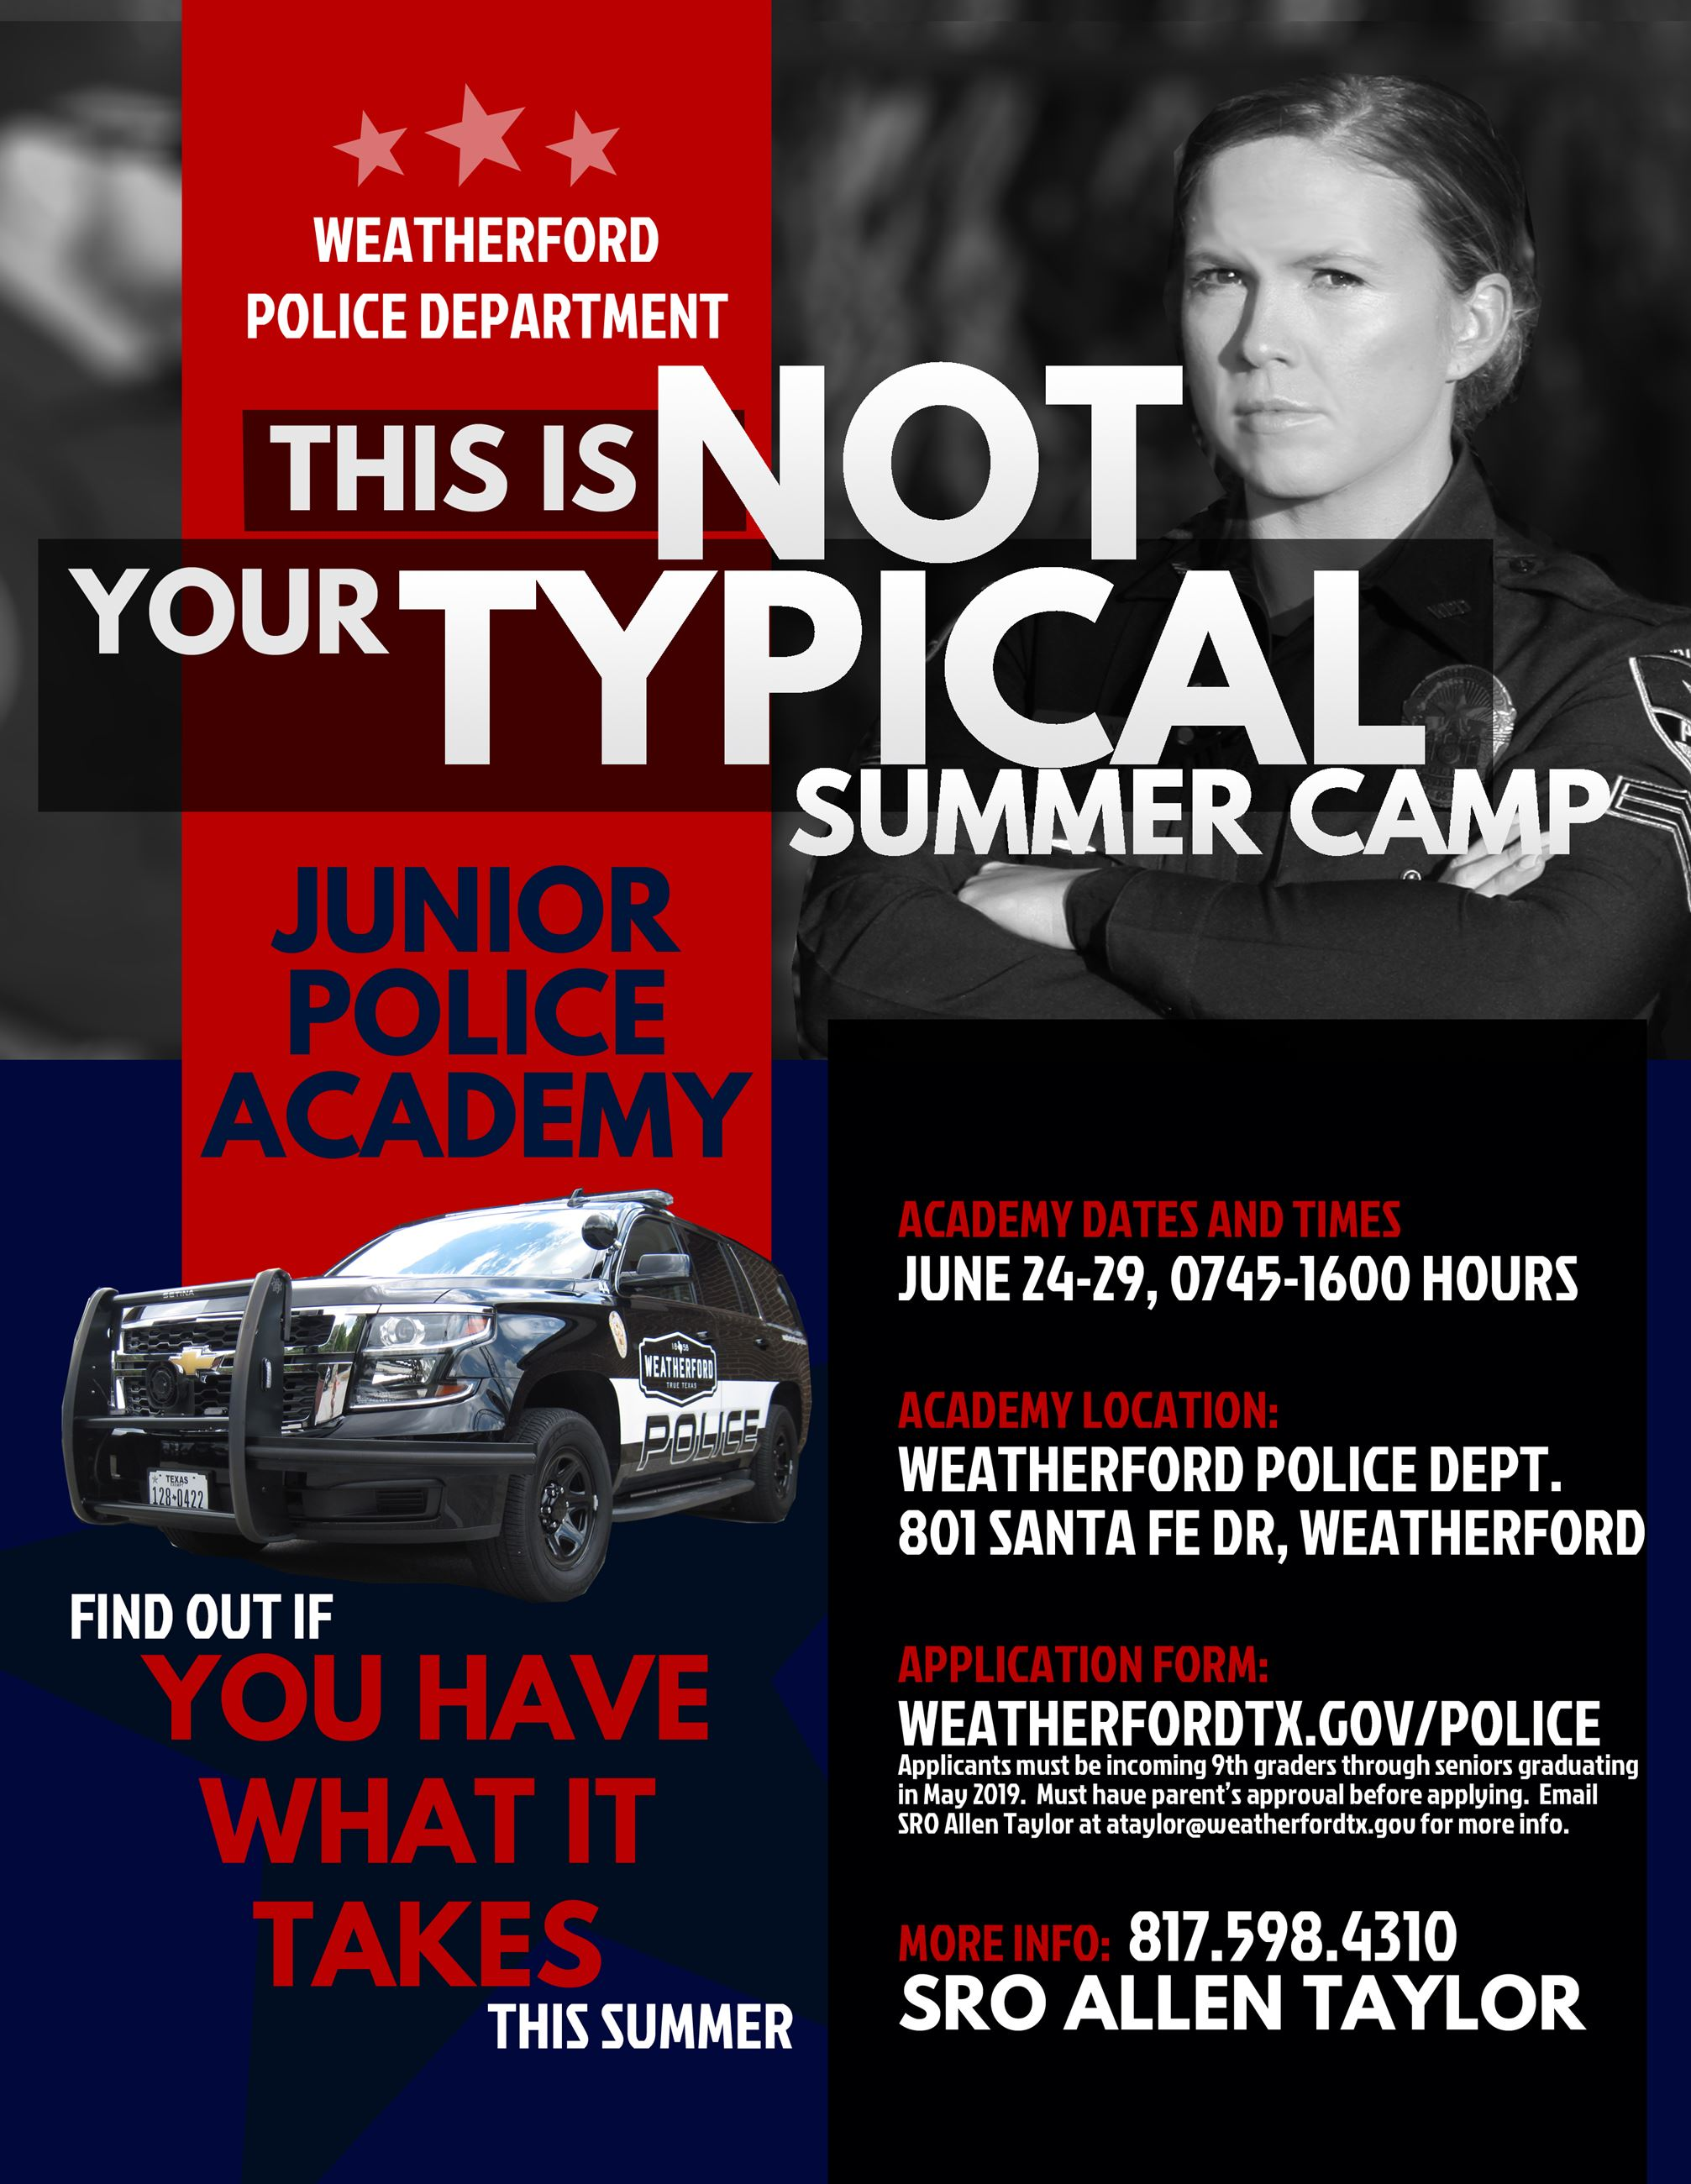 Junior Police Academy Flyer Vanzant